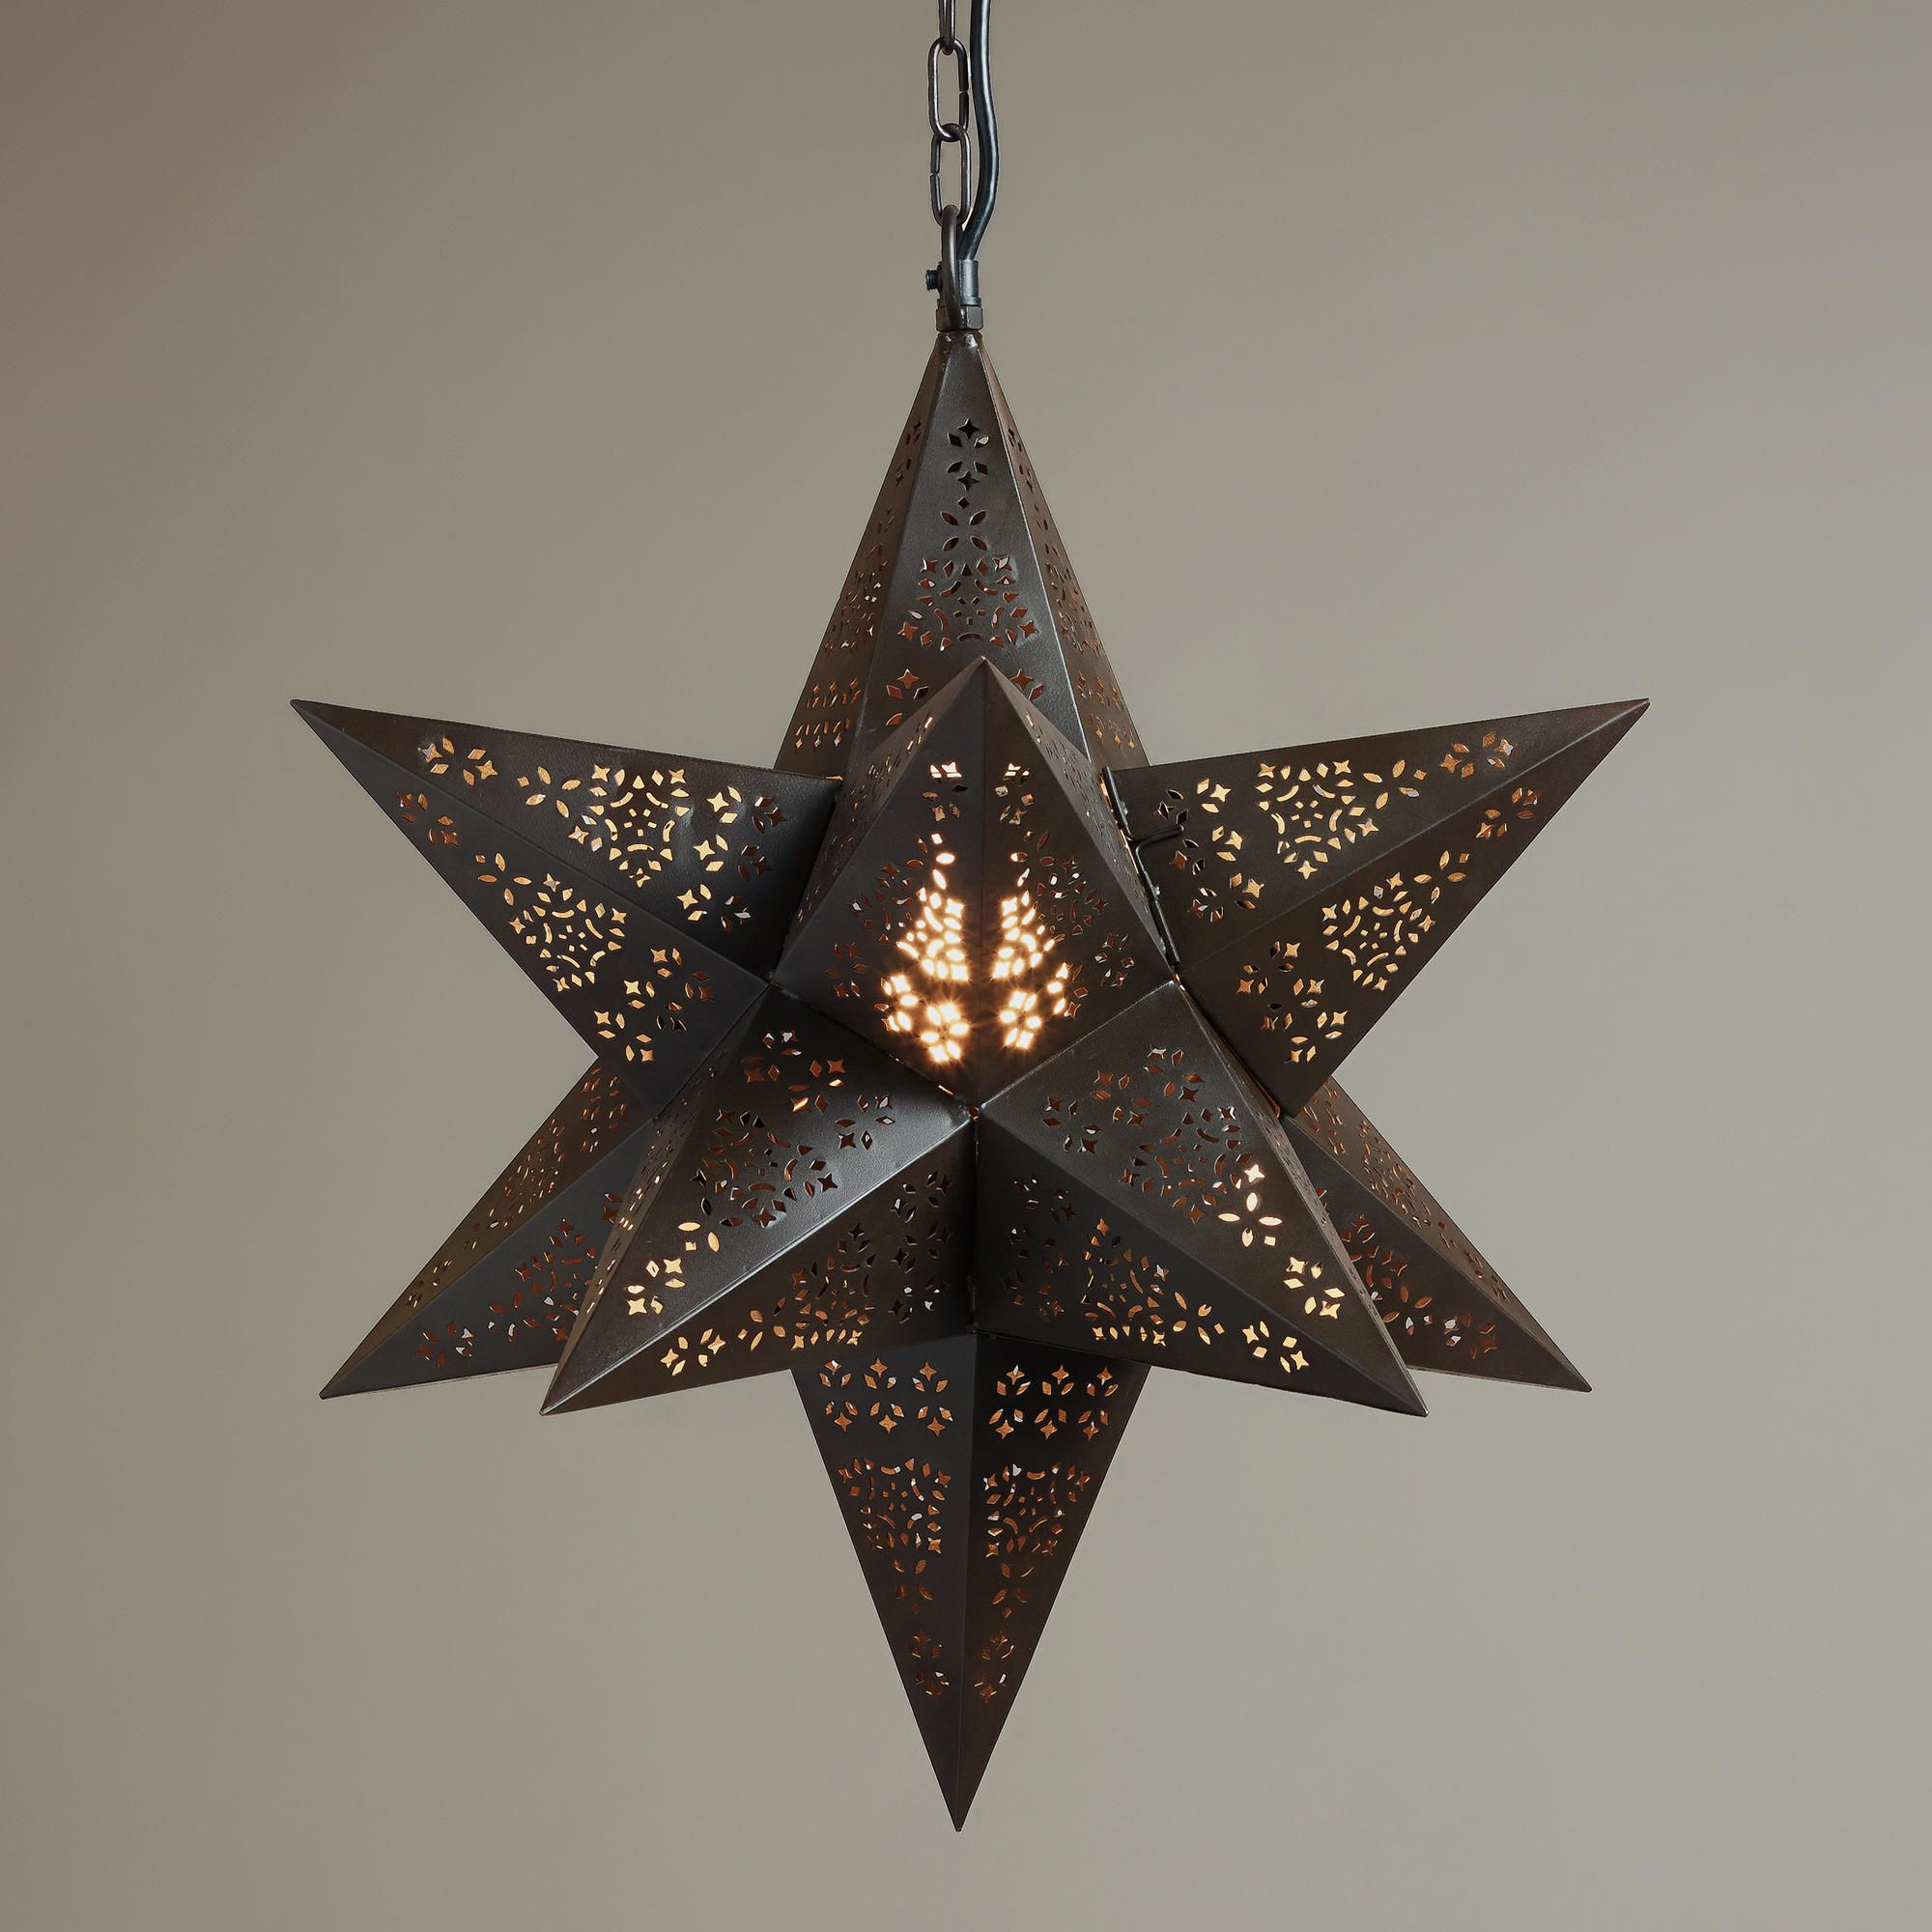 Moravian star hanging pendant lamp world market made in india moravian star hanging pendant lamp world market made in india aloadofball Choice Image